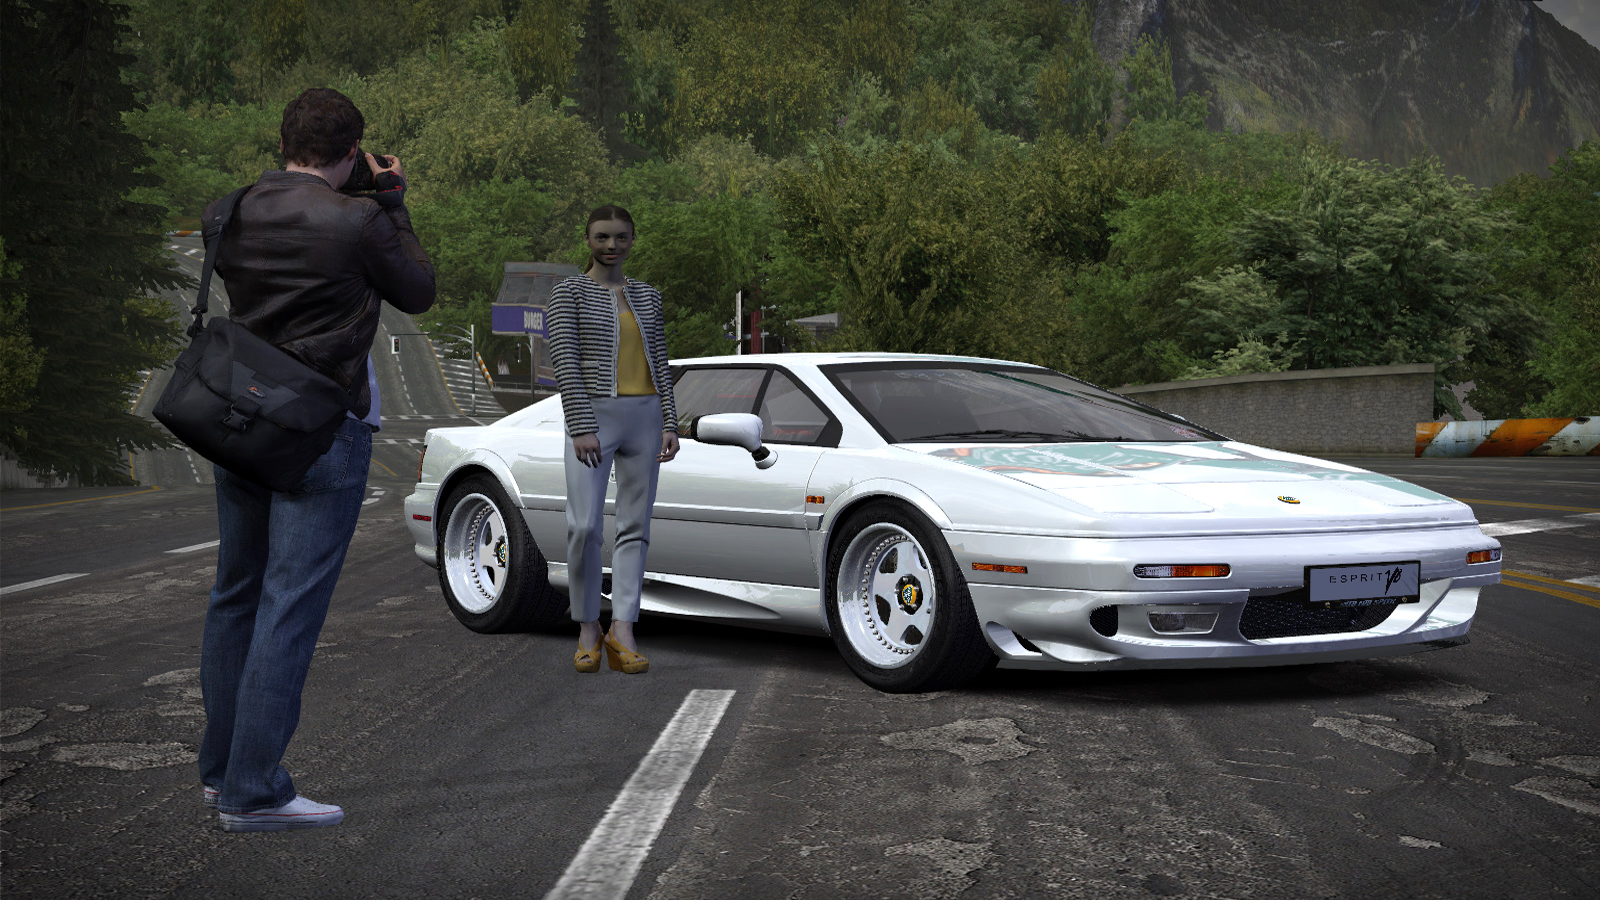 Lotus Esprit V8 S4 by Alex.Ka. - Need for Speed: Most Wanted (2005) Lotus Esprit V8, Автомобиль